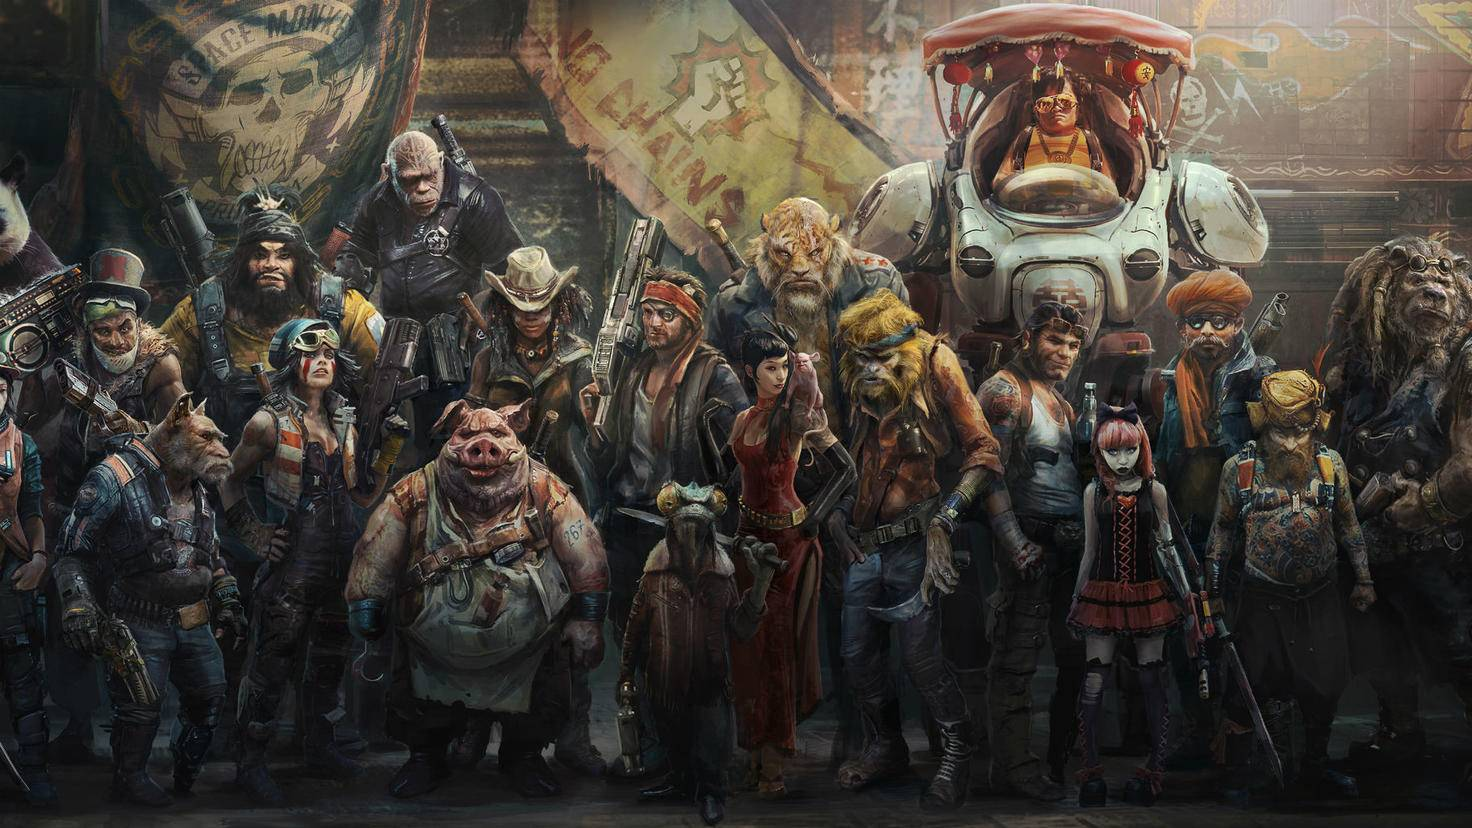 beyond-good-and-evil-2-concept-art-pirates